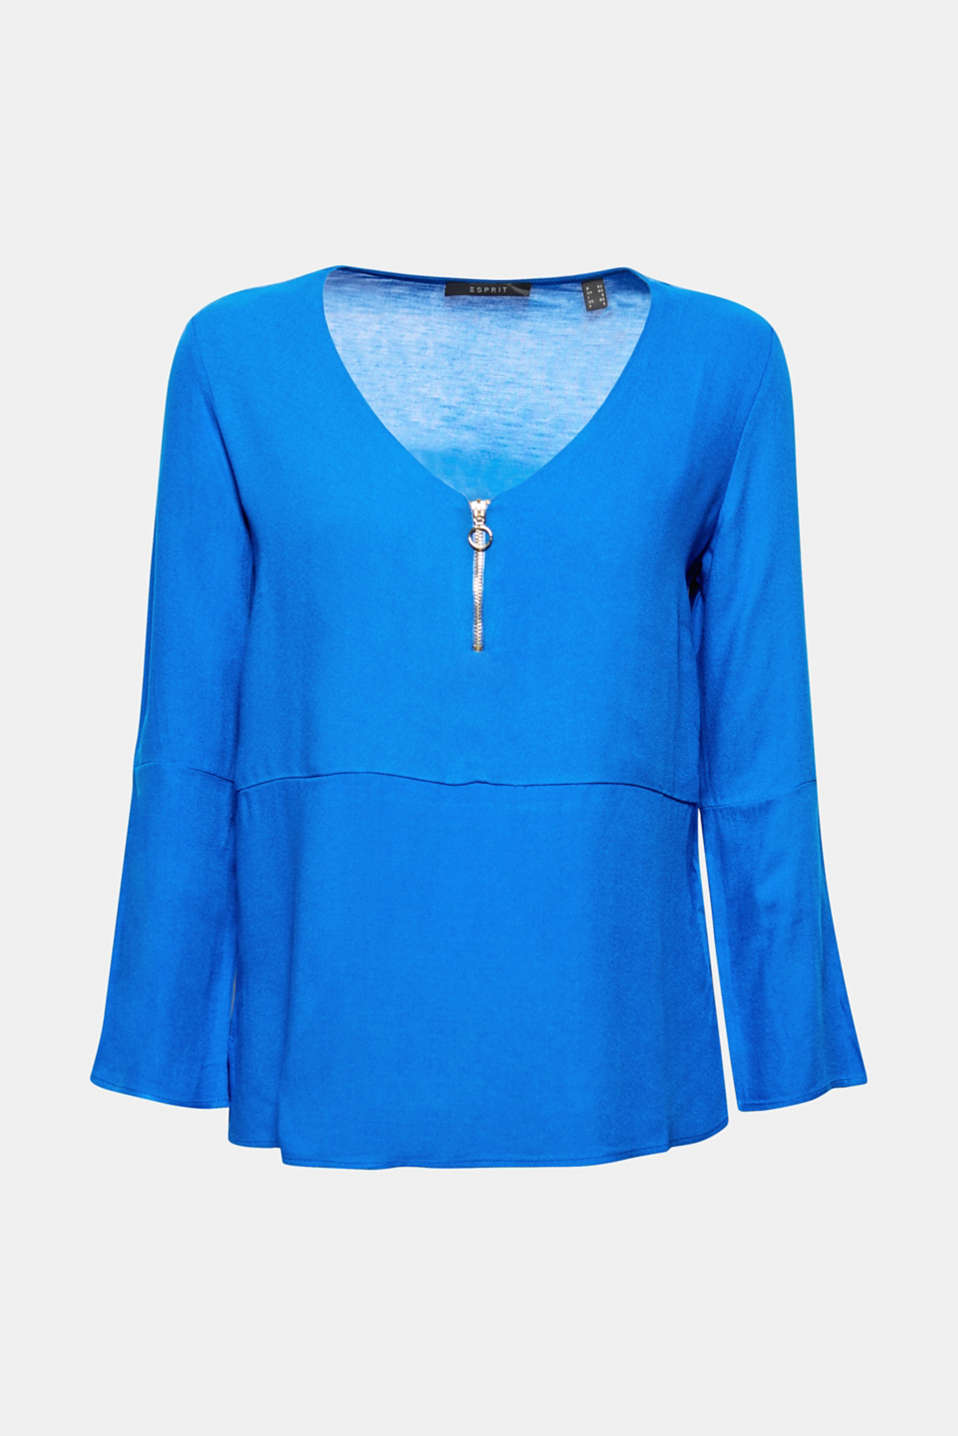 The soft lyocell fabric, striking zip and cropped cut make this long-sleeve top especially stylish.